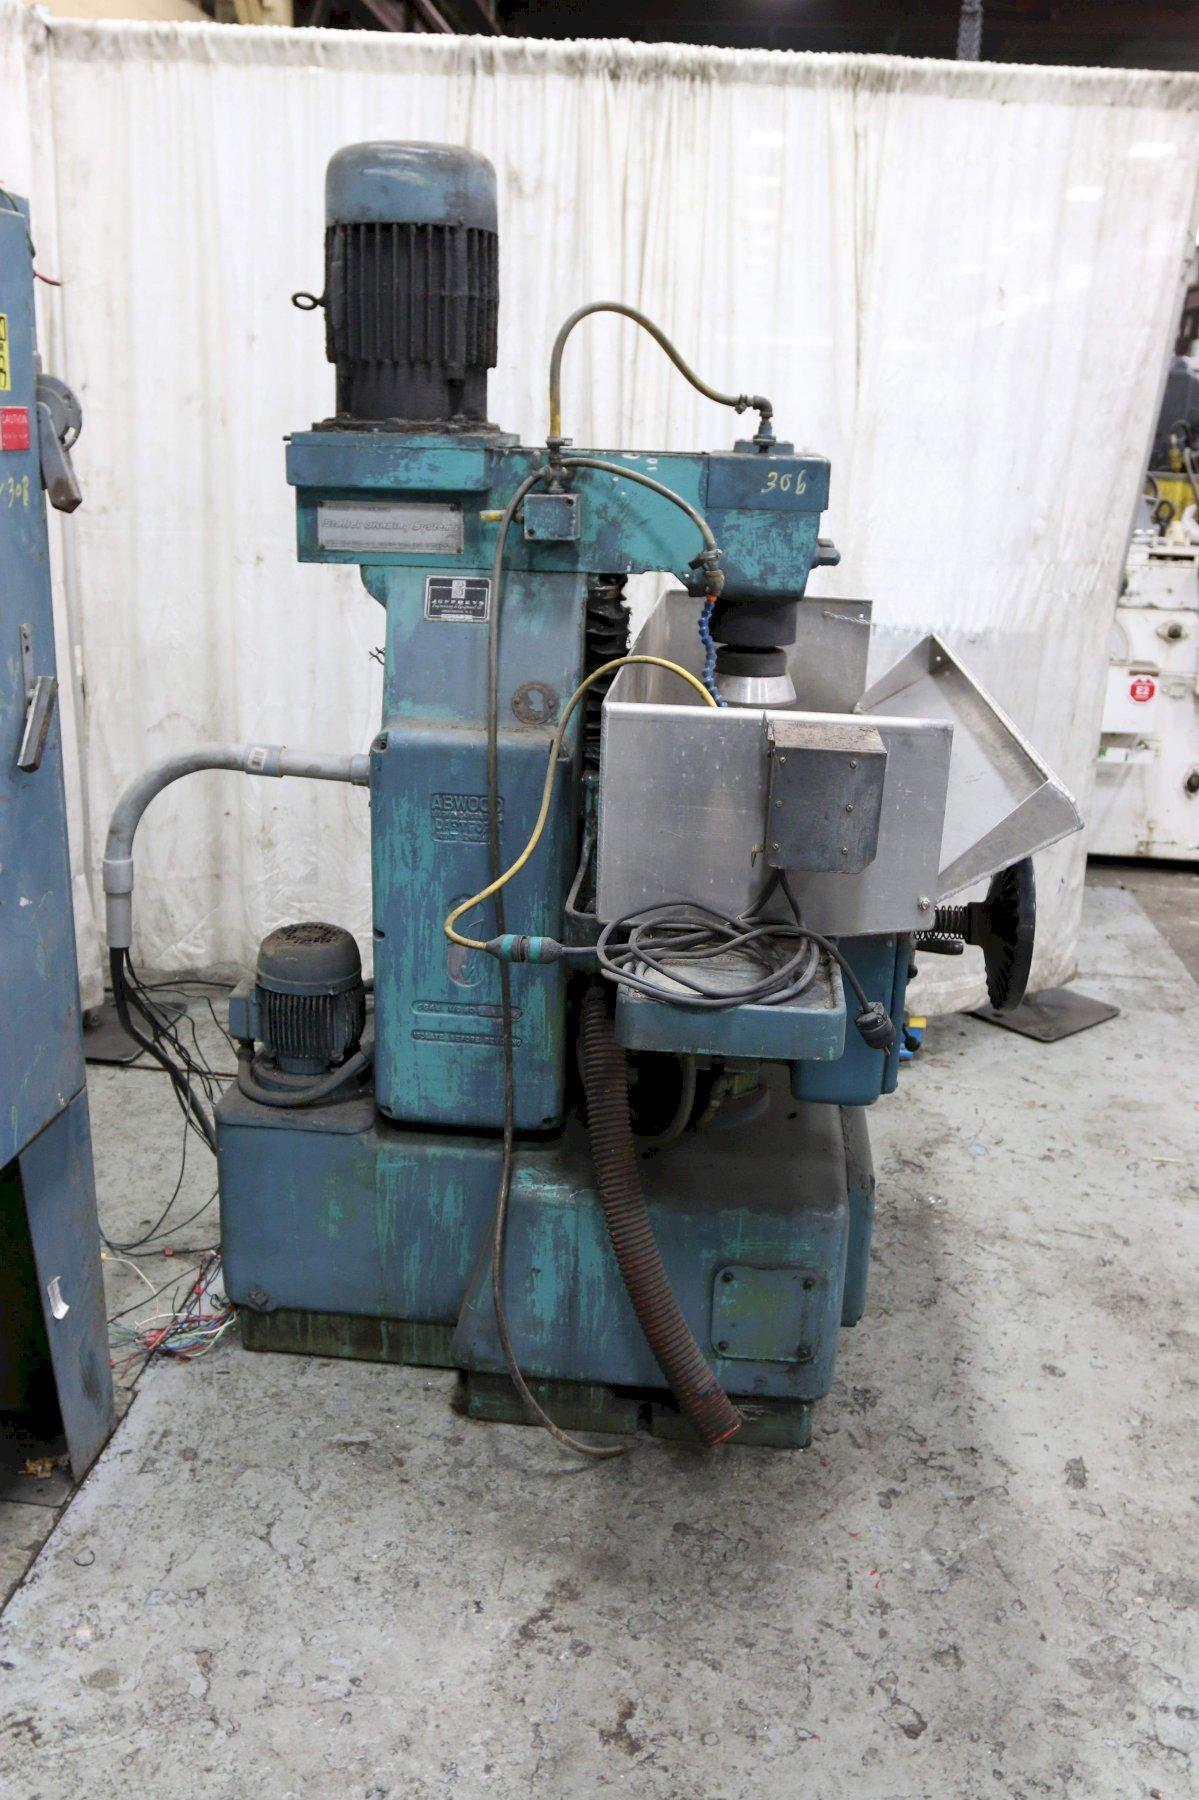 8' X 24' ABWOOD VERTICAL SPINDLE ROTARY SURFACE GRINDER: STOCK #73045